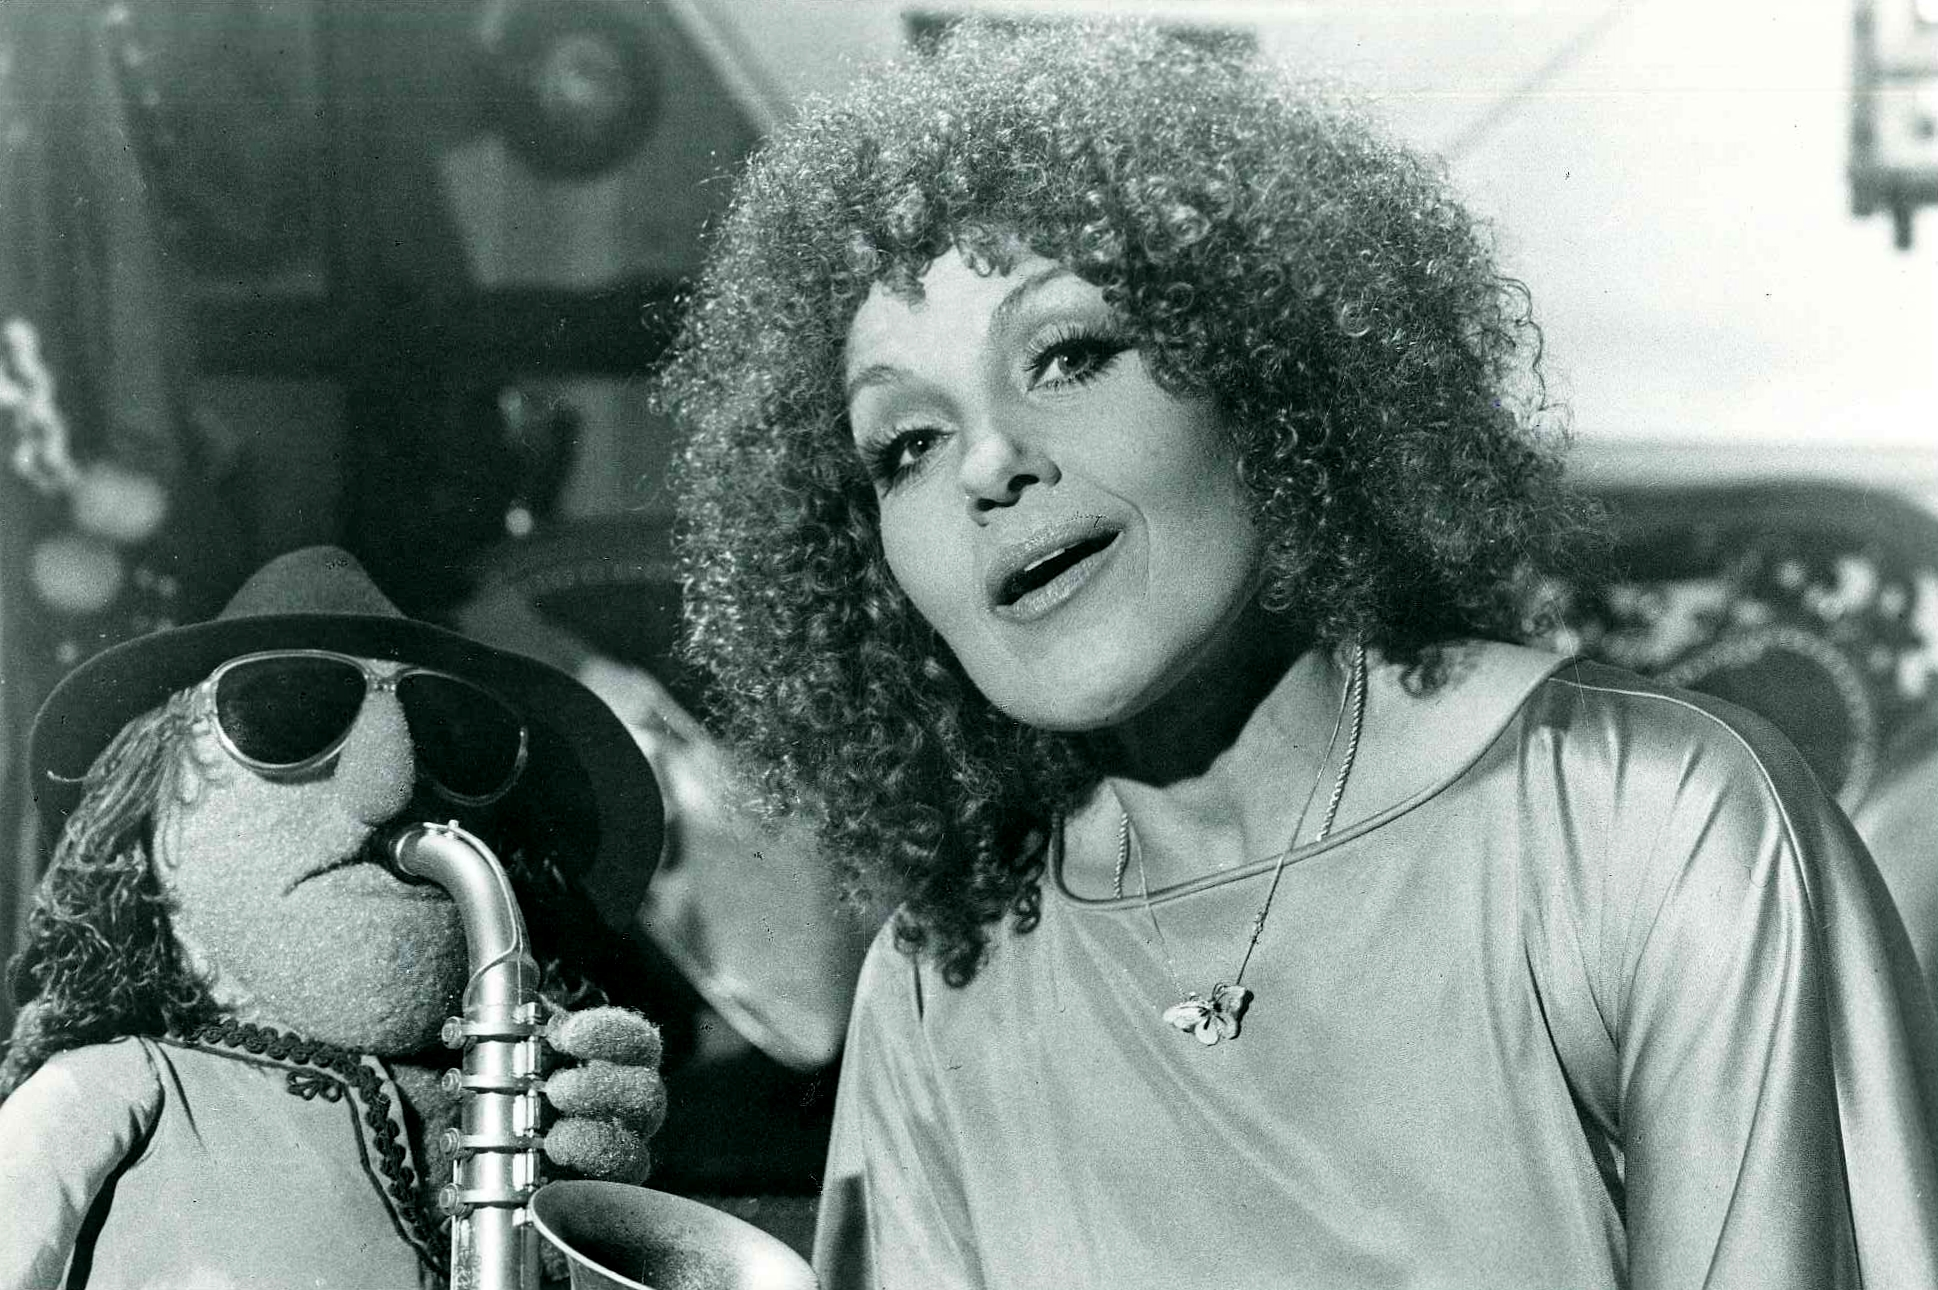 What's Hot On Pinterest Cleo Laine And It's Lighting Design 2 lighting design What's Hot On Pinterest: Cleo Laine And It's Lighting Design Whats Hot On Pinterest Cleo Laine And Its Lighting Design 2